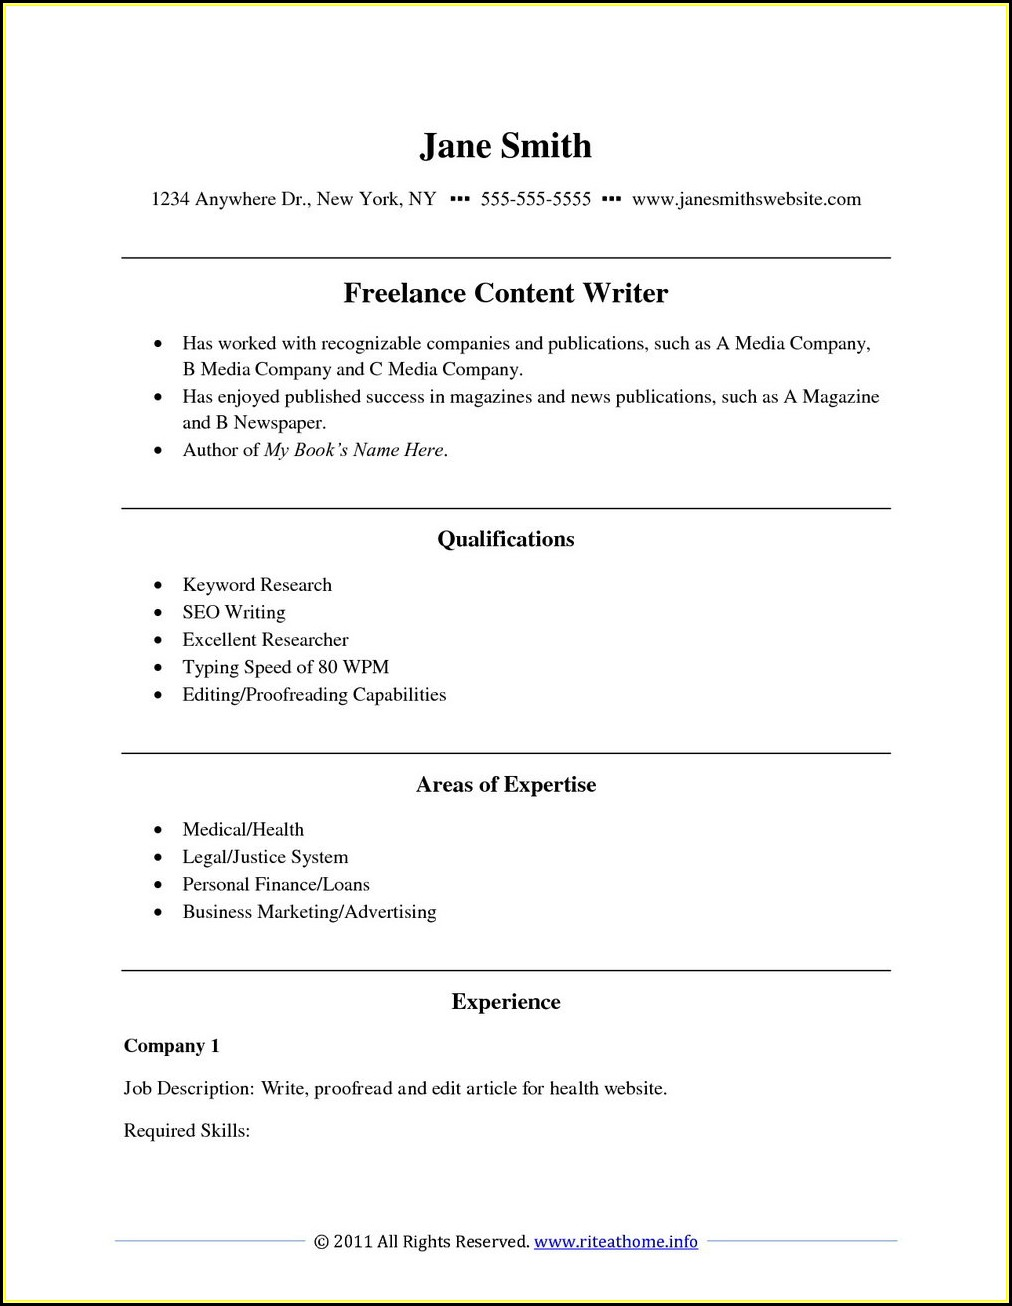 federal resume writing services best usajobs upstate rochester ny child development Resume Best Federal Resume Writing Services